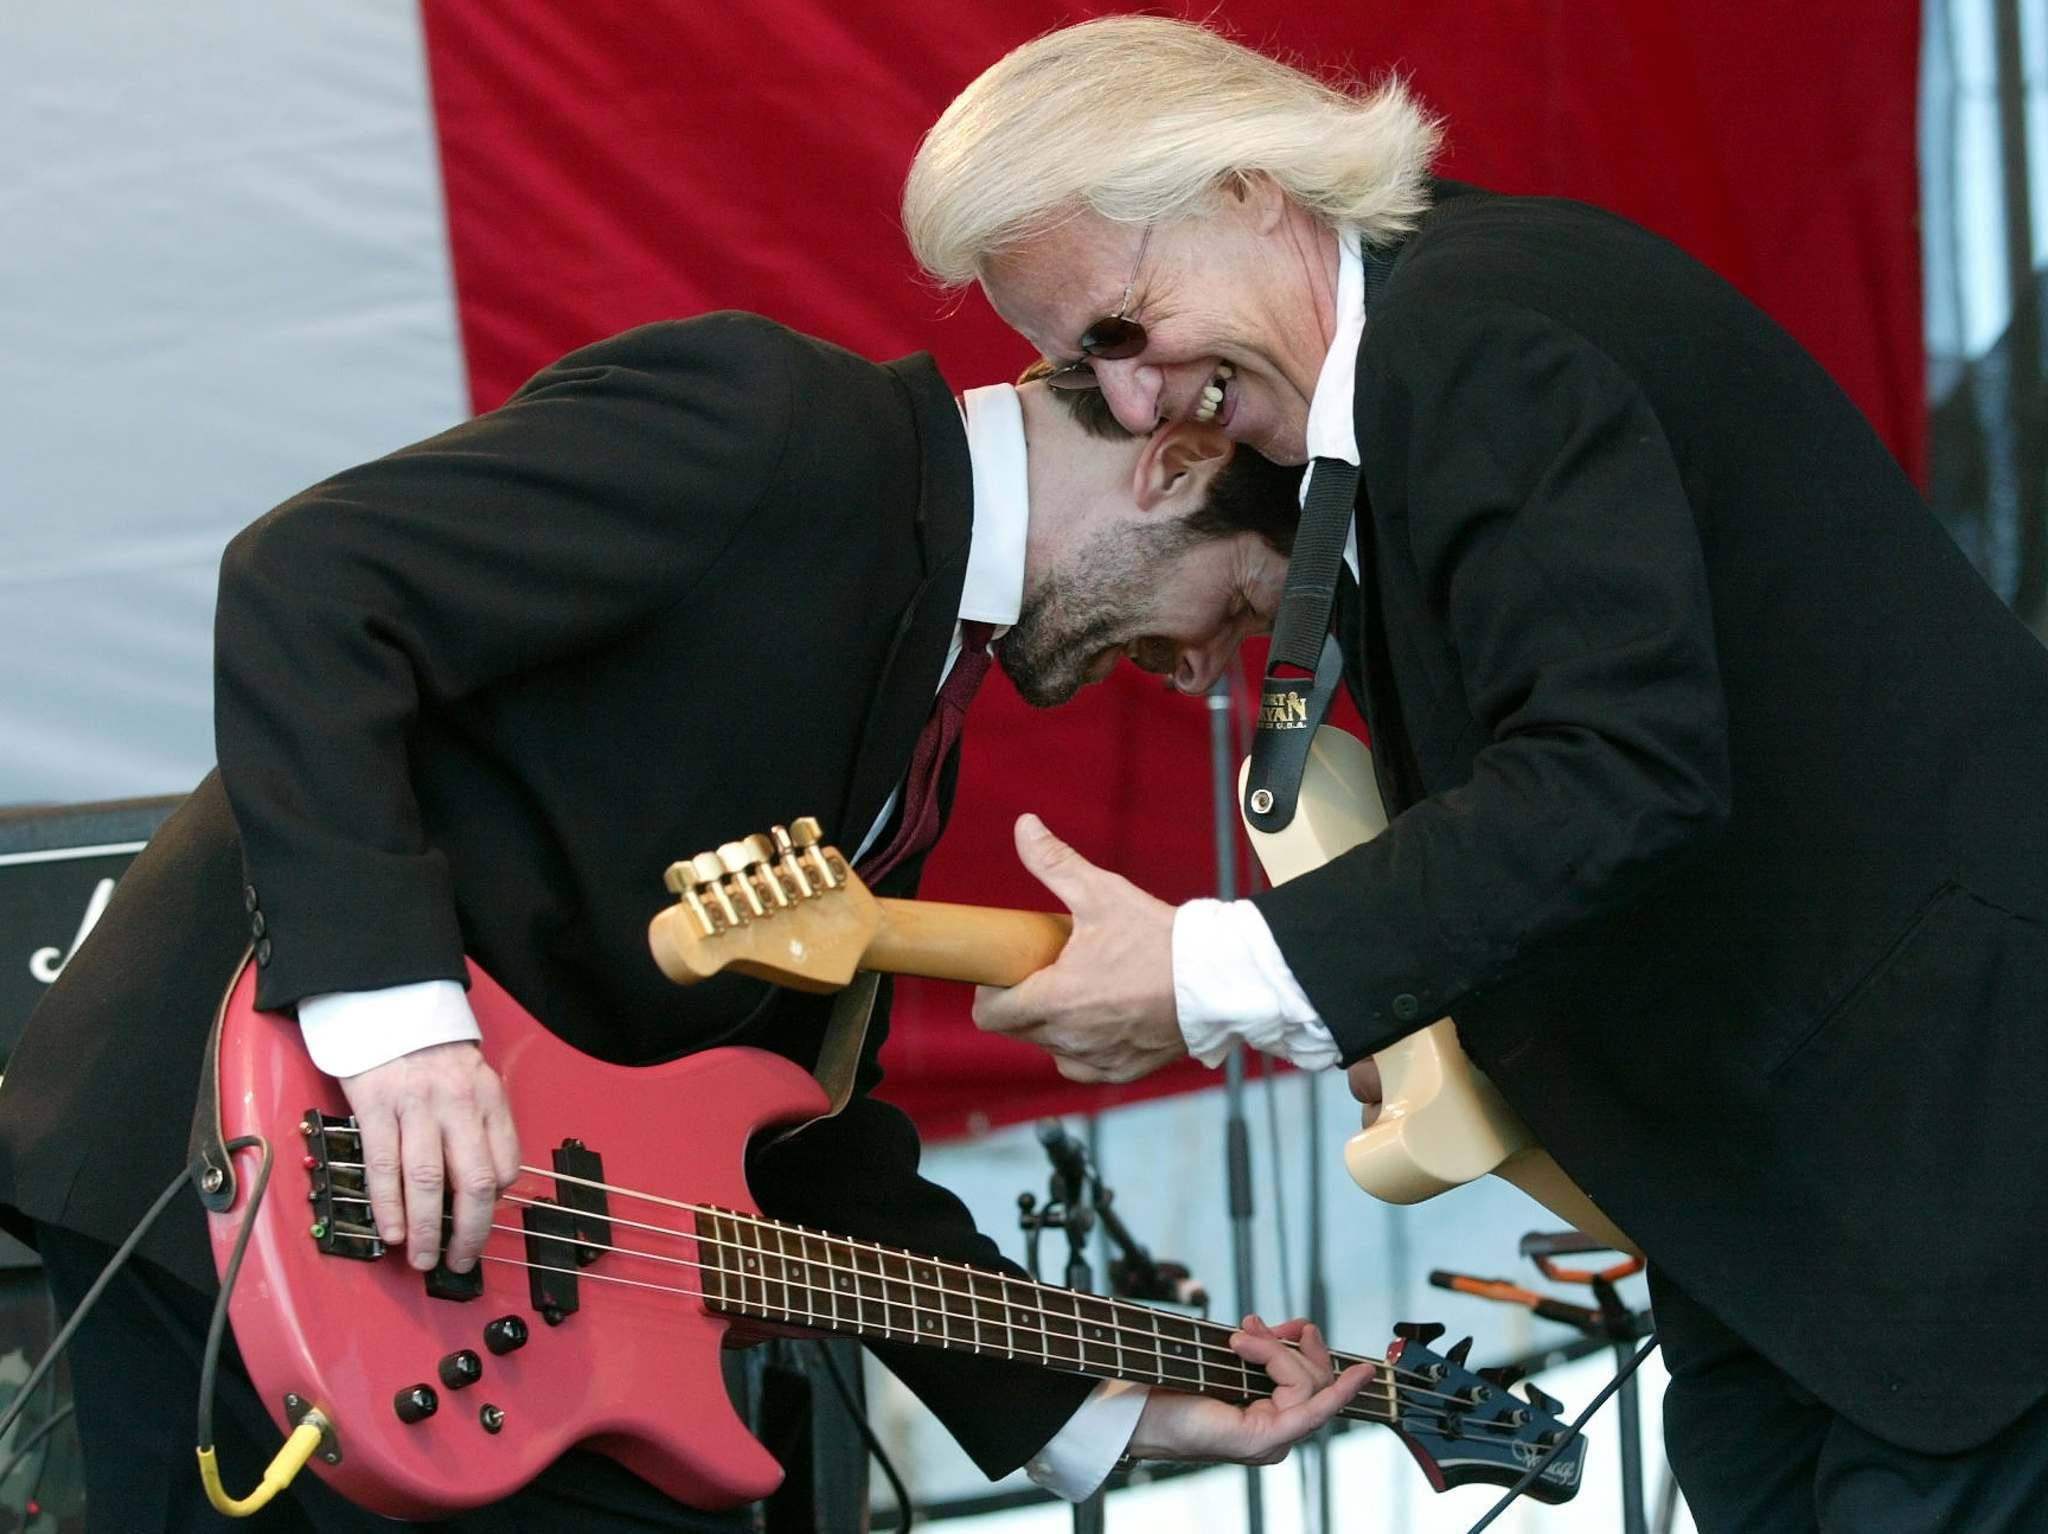 Chris Burke-Gaffney, left, and Lou Petrovich of Winnipeg's vintage rock group the Pumps rock on at Spiritfest at The Forks in May 2002.